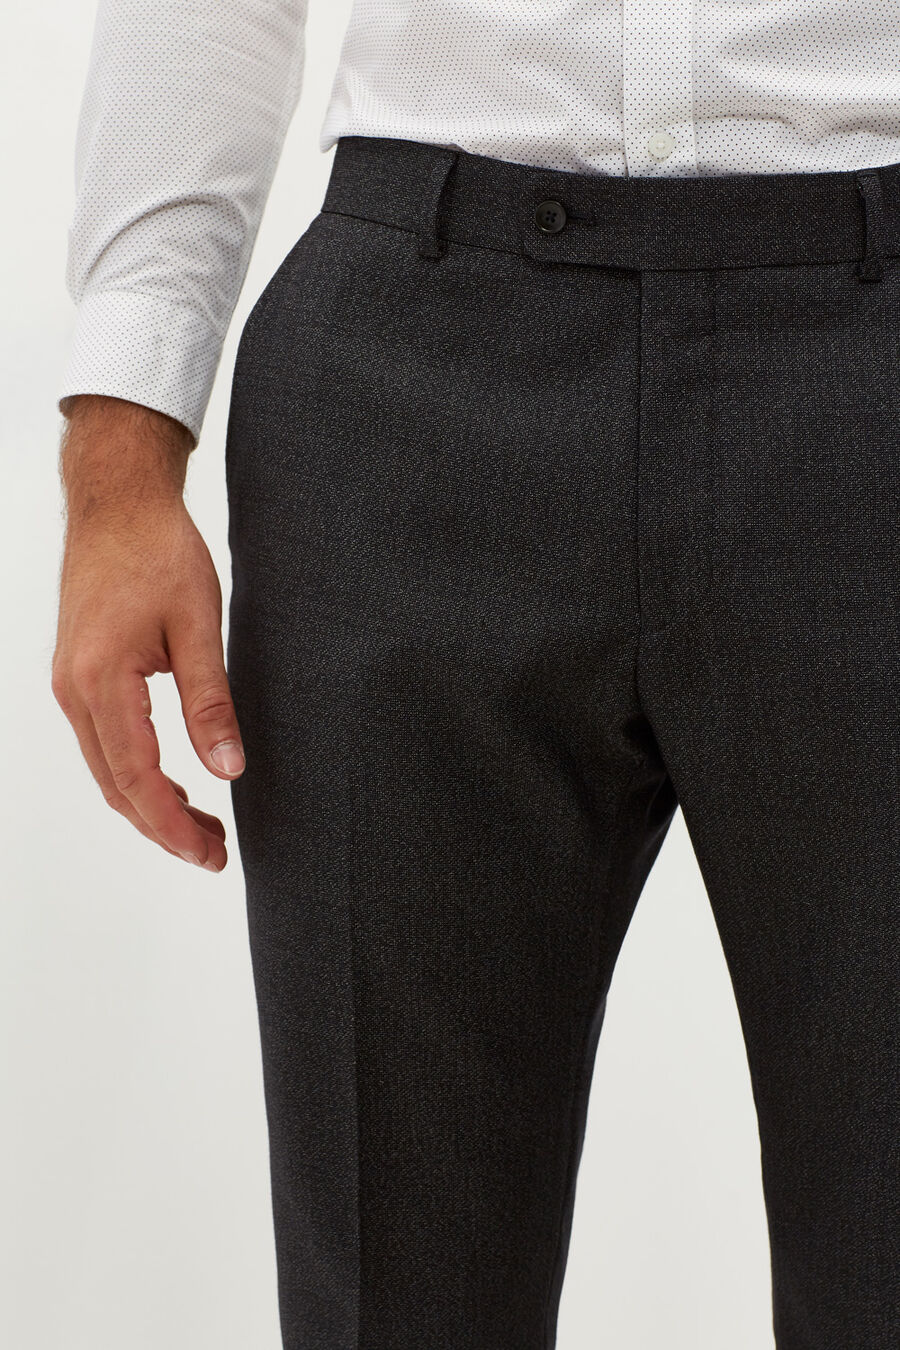 Separate trousers